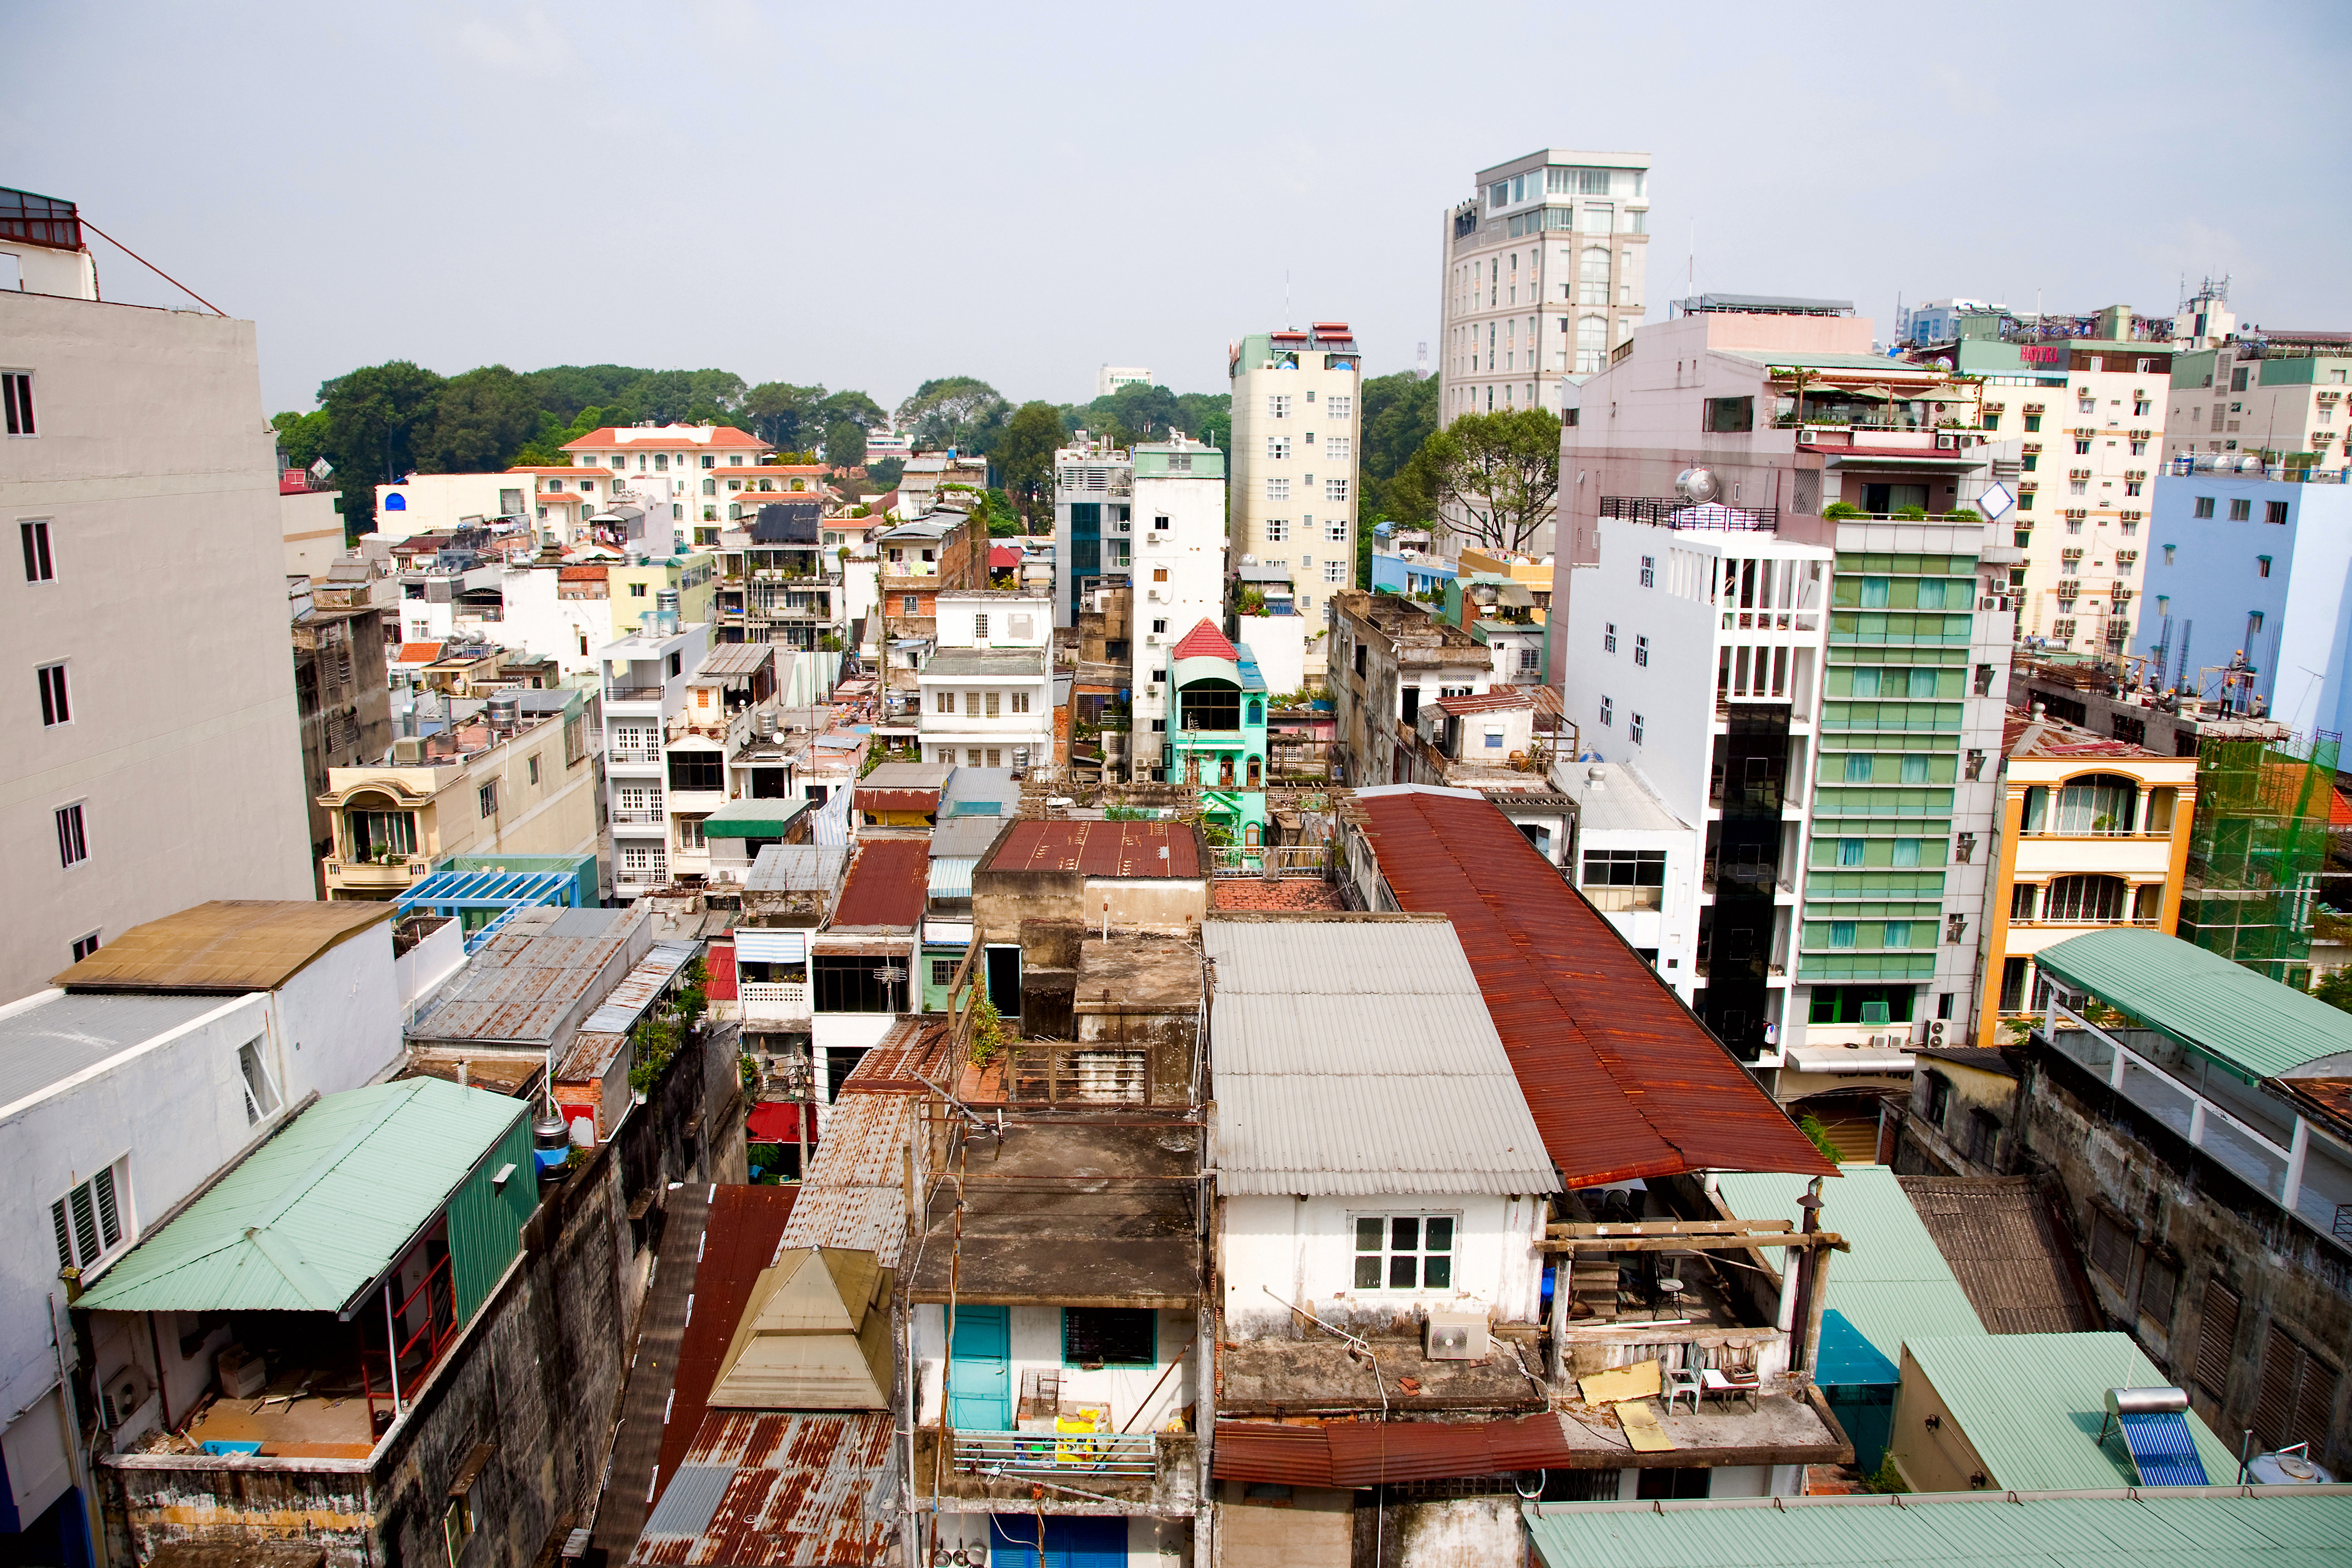 Ho Chi Minh City, Vietnam, is a large bustling city of seven million people, which mixes old and new architecture. Photo by magicinfoto/shutterstock.com